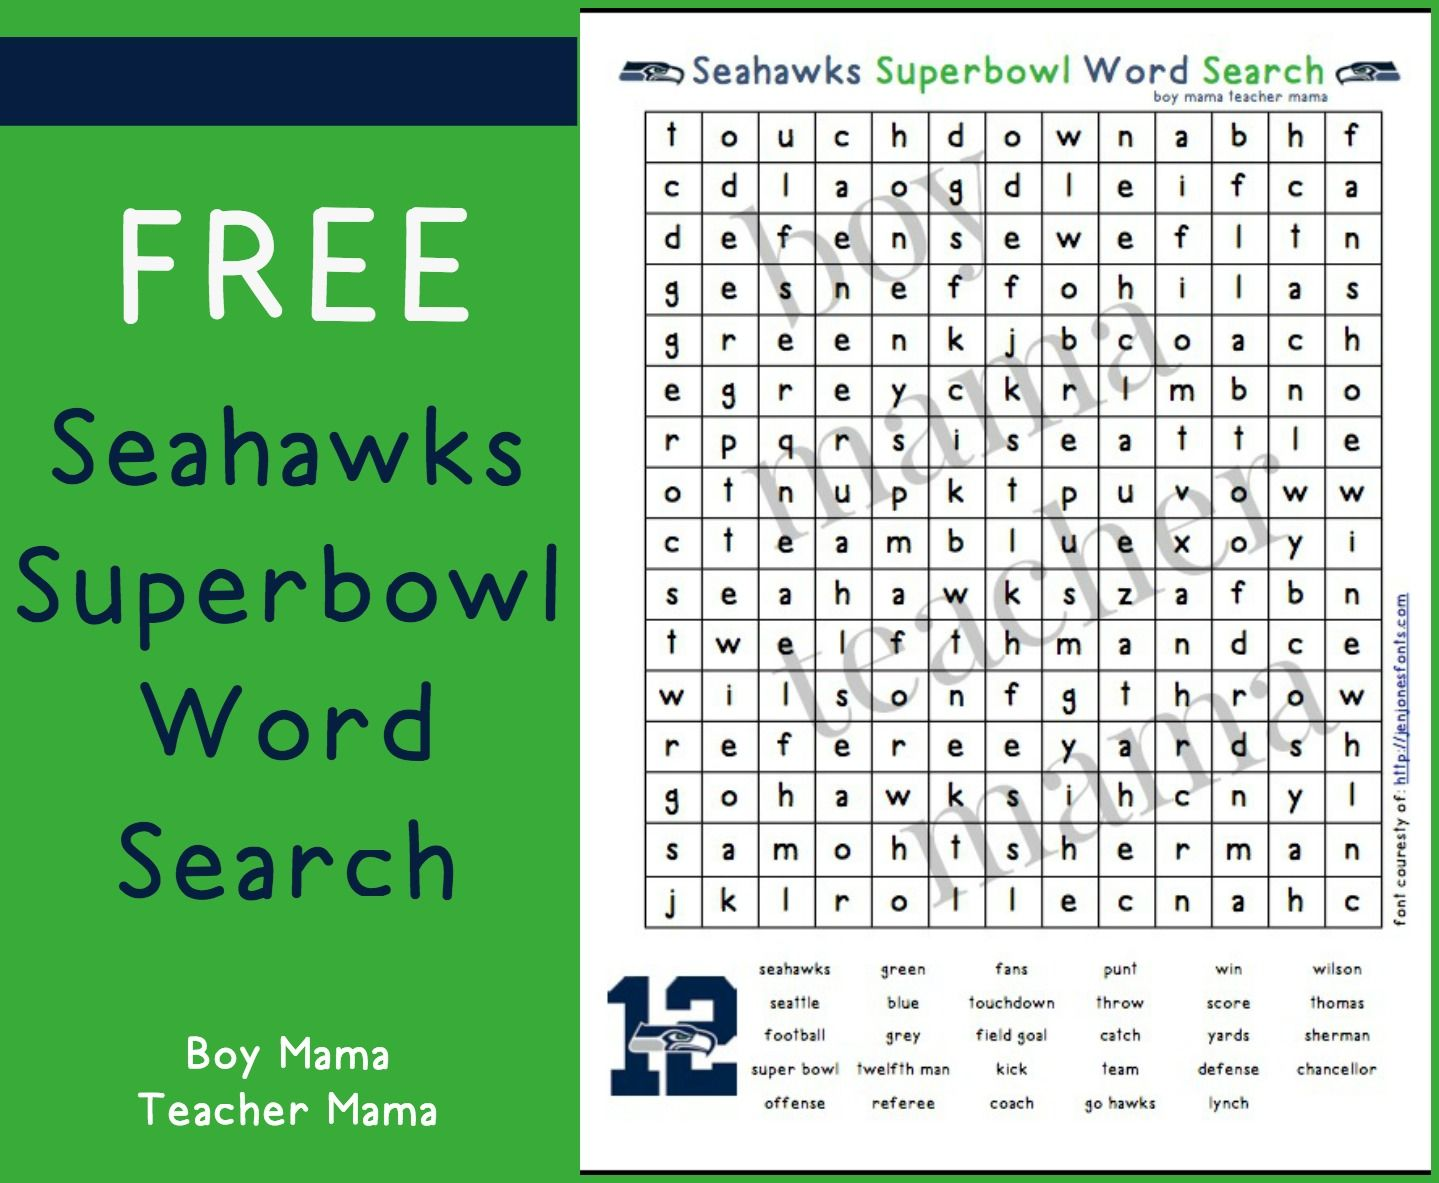 Teacher Mama Free Seahawks Superbowl Word Search